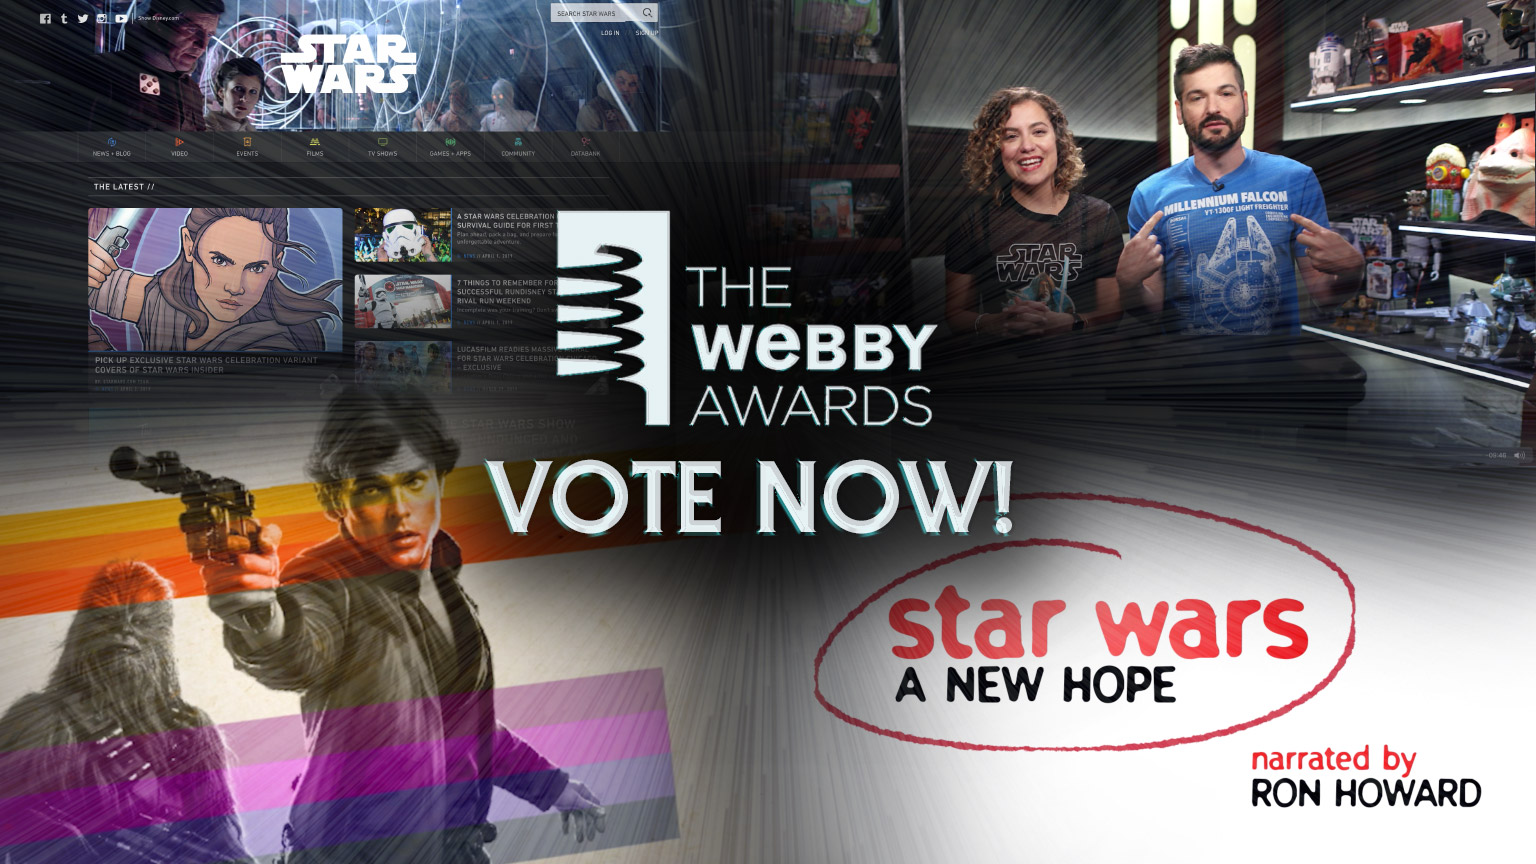 Montage of StarWars.com homepage and the Star Wars Show for the Webby Awards 2019.